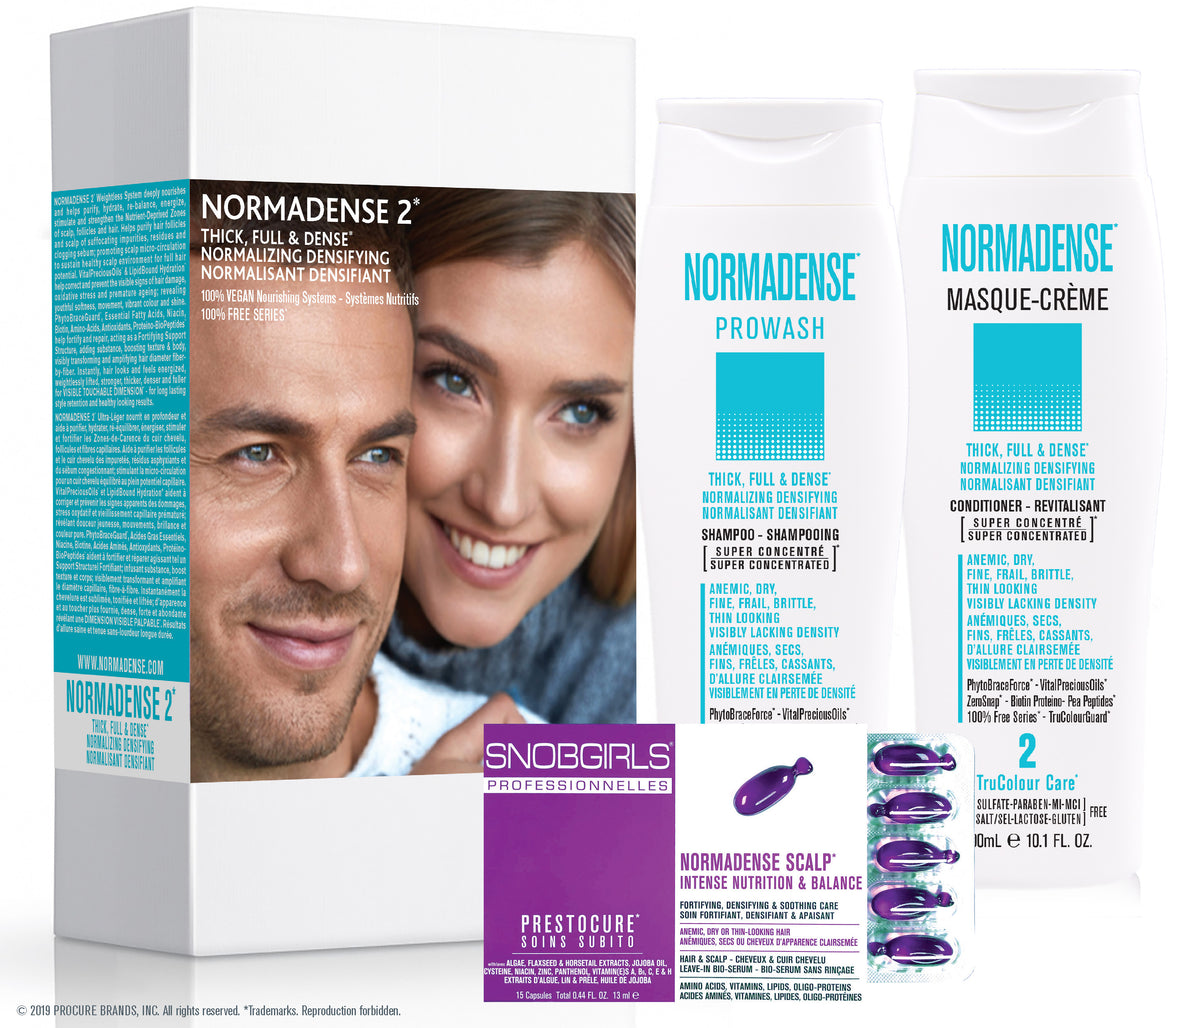 TRIO BOX NORMADENSE 2 THICK, FULL & DENSE  NORMALIZING DENSIFYING